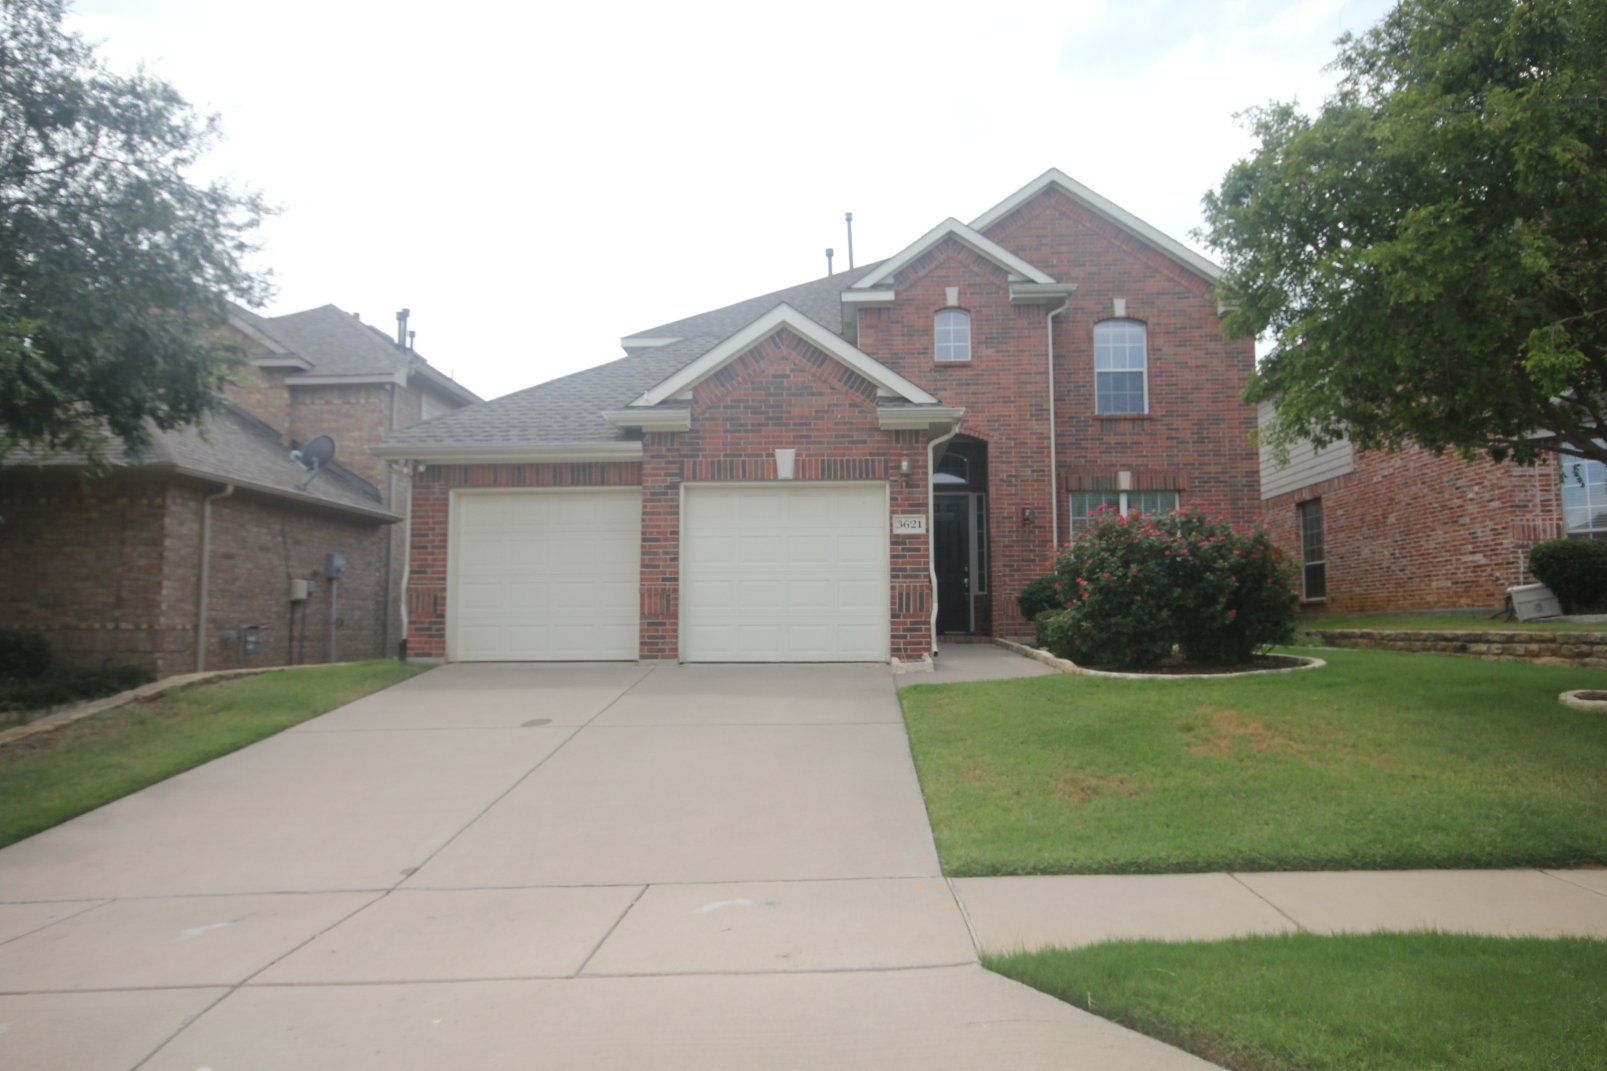 This home sold in Flower Mound just in 1 day FlowerMound